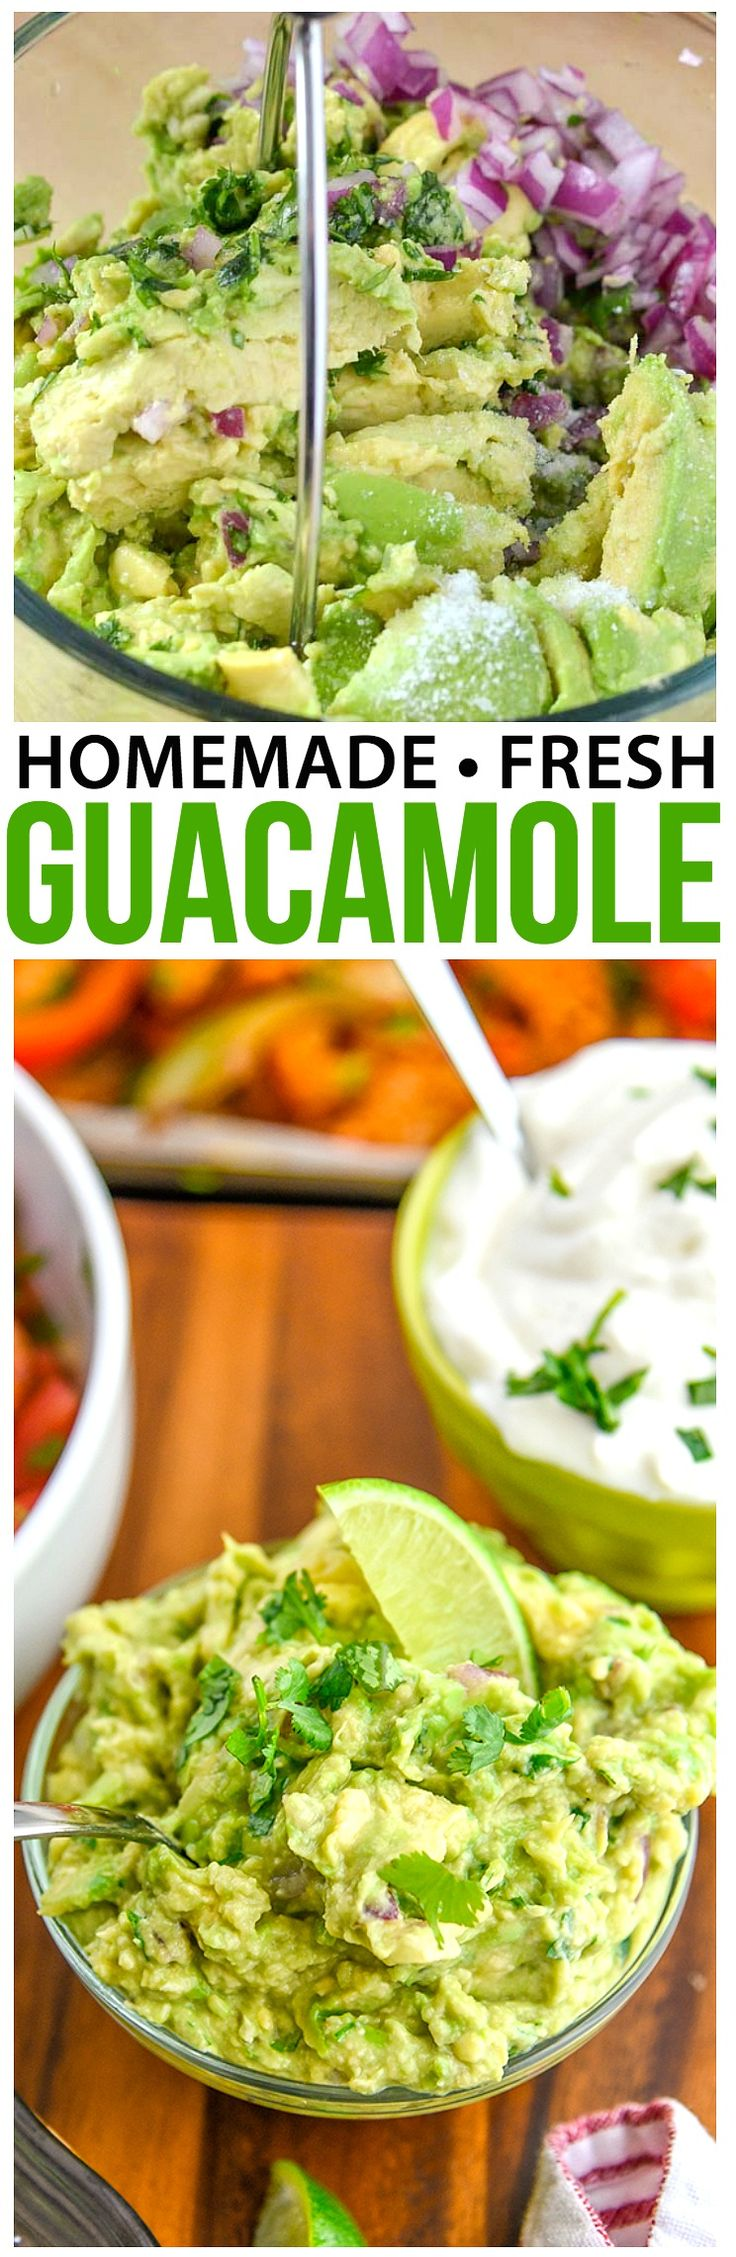 Mini Chef Mondays Fresh Guacamole Recipe -  This is a great guacamole dip that is kid friendly, but still an authentic guacamole recipe. via @CourtneysSweets